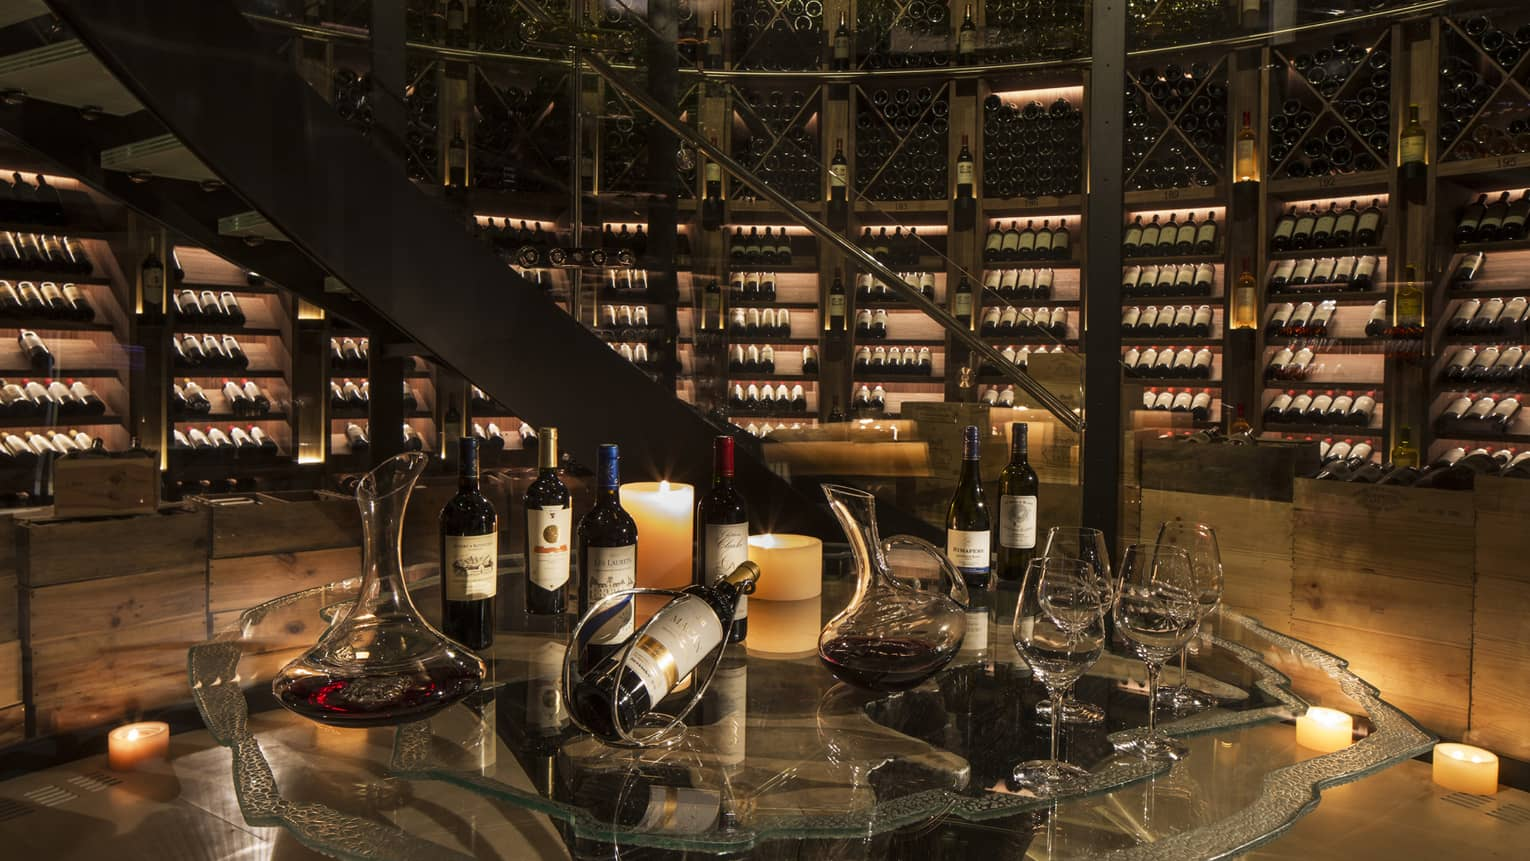 Bottles of wine are arranged for a tasting within an expansive, candlelit wine cellar